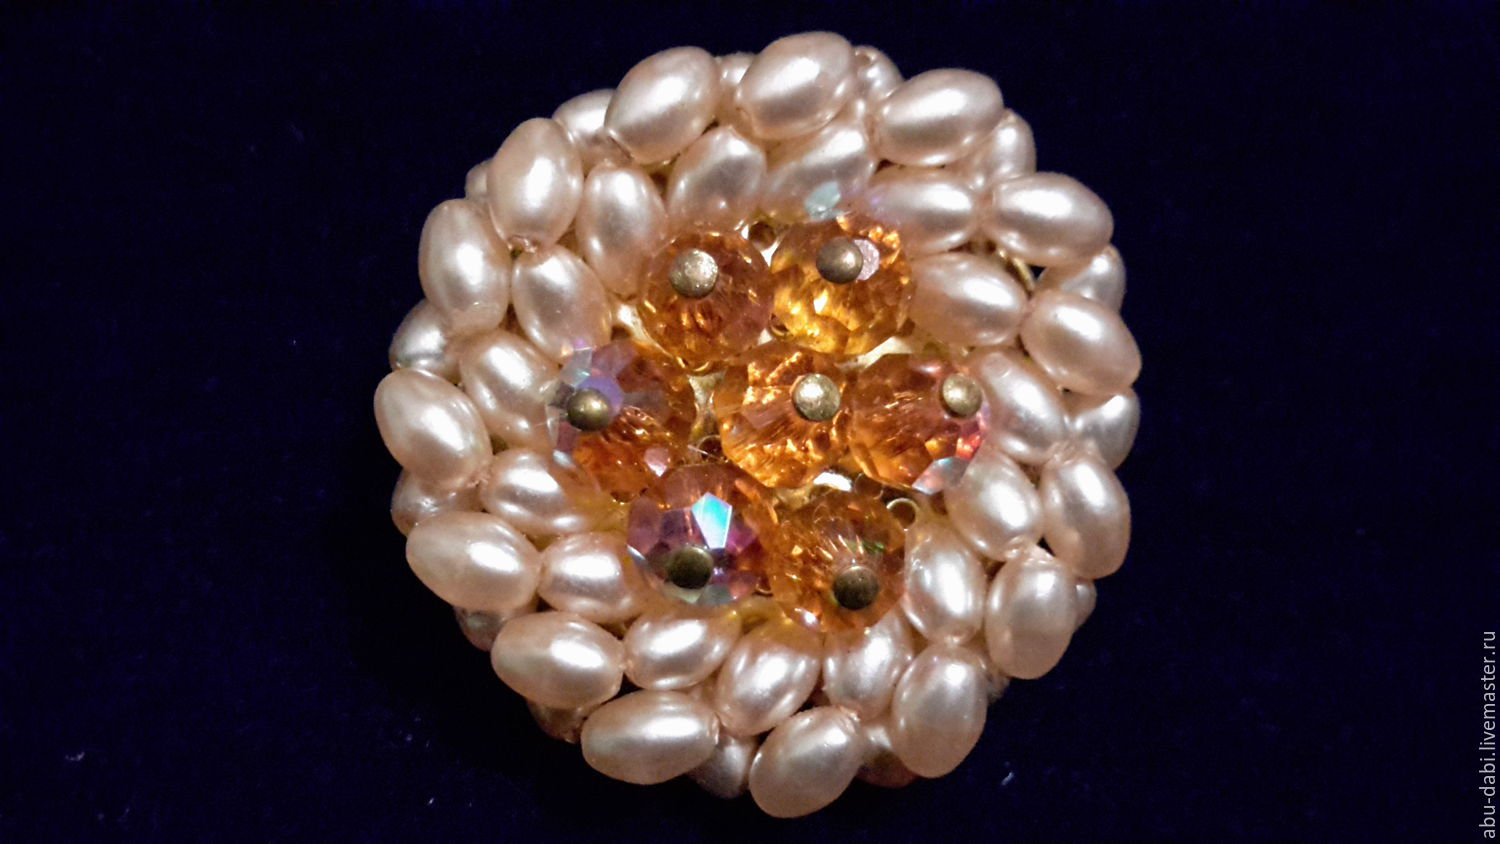 Czech vintage brooch: `rice pearls` beads tea-colored with an iridescent coating.So the brooch looks on the dark velvet.